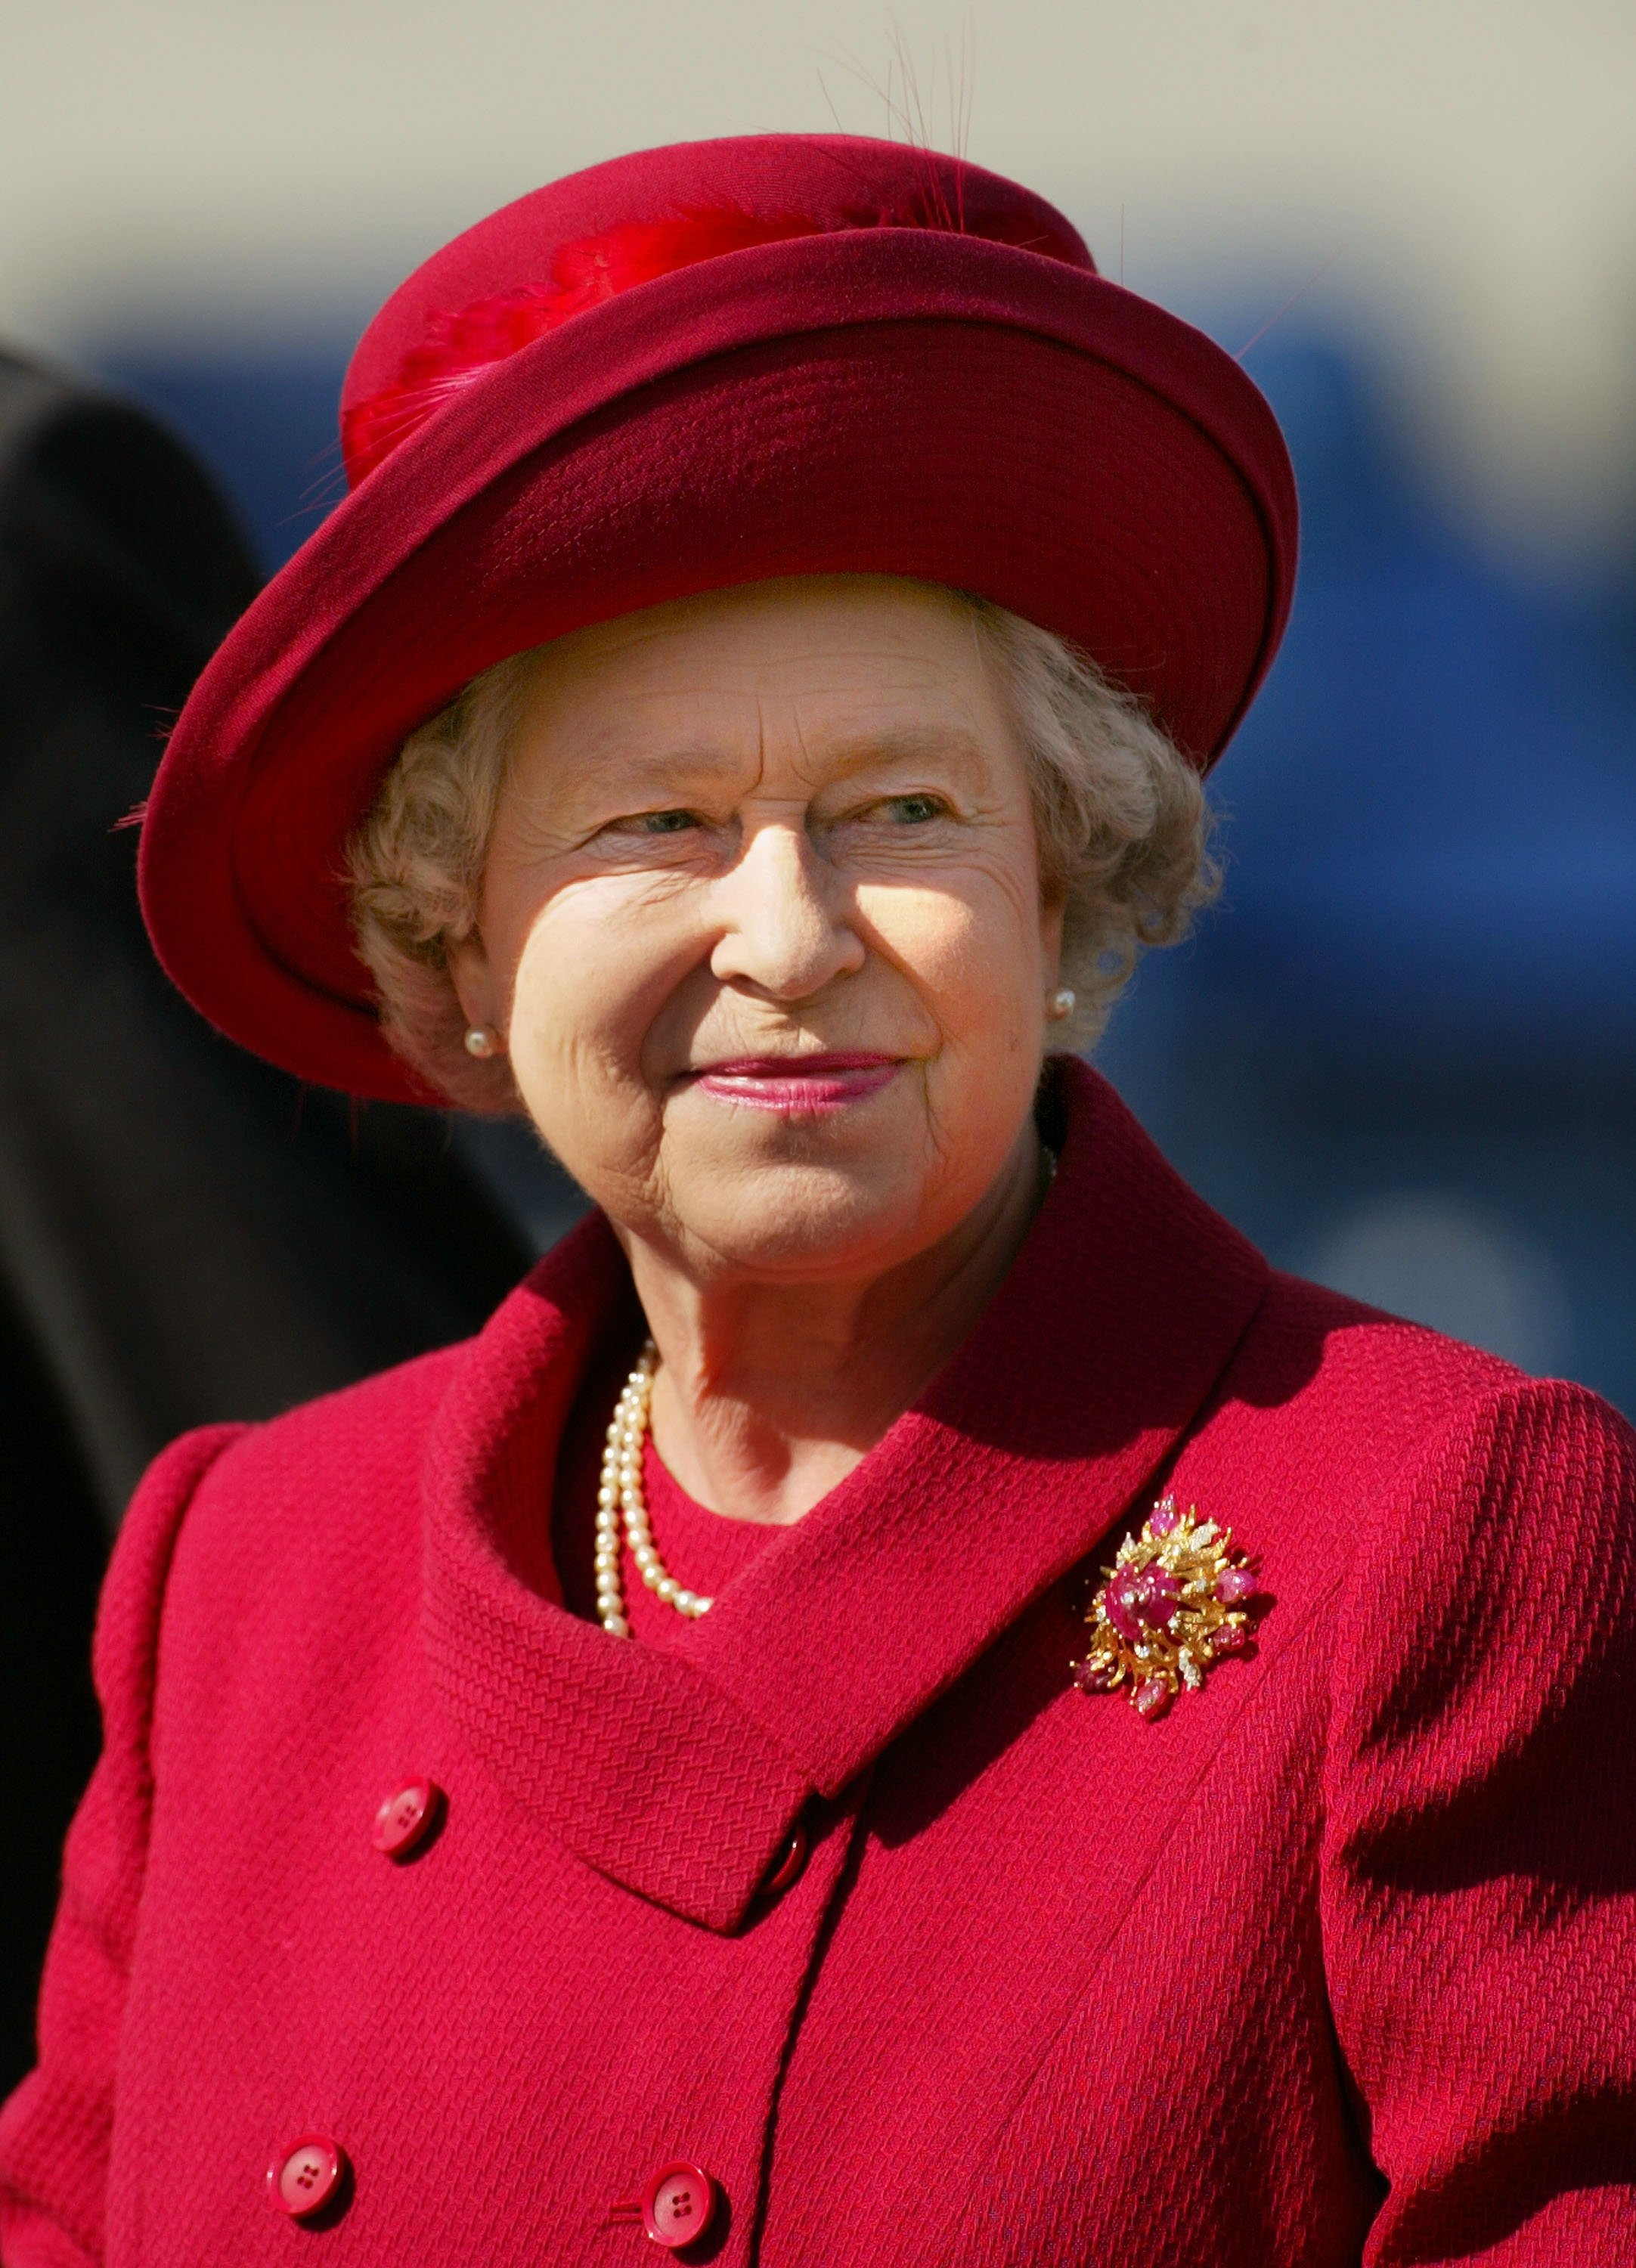 Queen Elizabeth at The Royal Windsor Horse Show at Windsor In May 18, 2002, Great Park, England | Photo: GettyImages